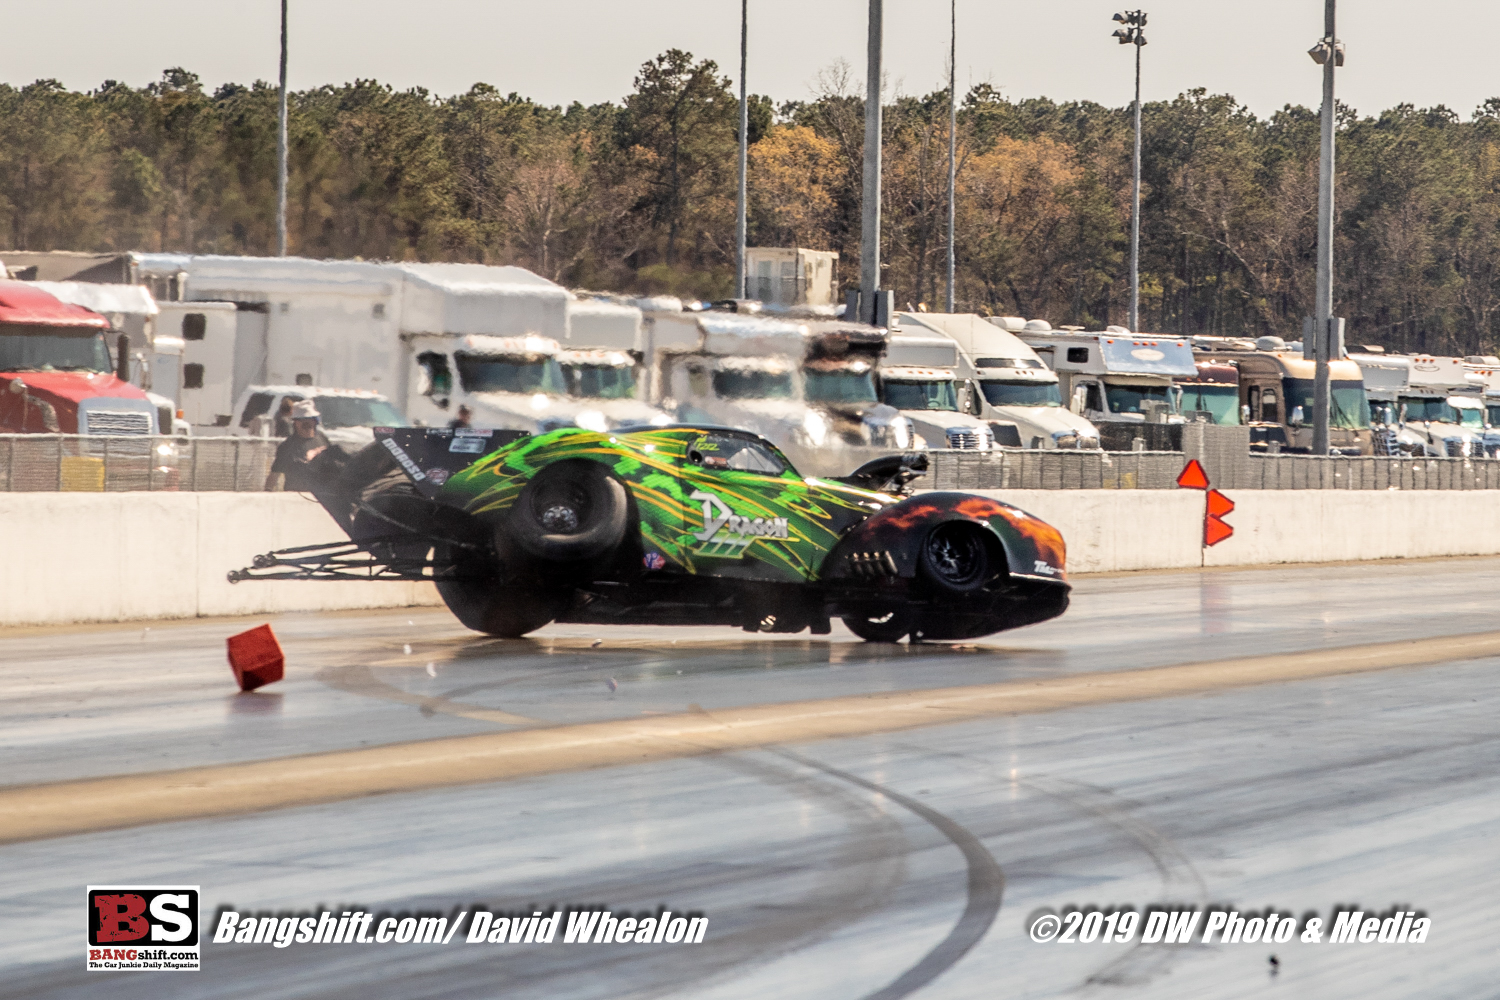 PDRA East Coast Nationals Photo Coverage: They Were Flying At Galot To Kick Off The Season!